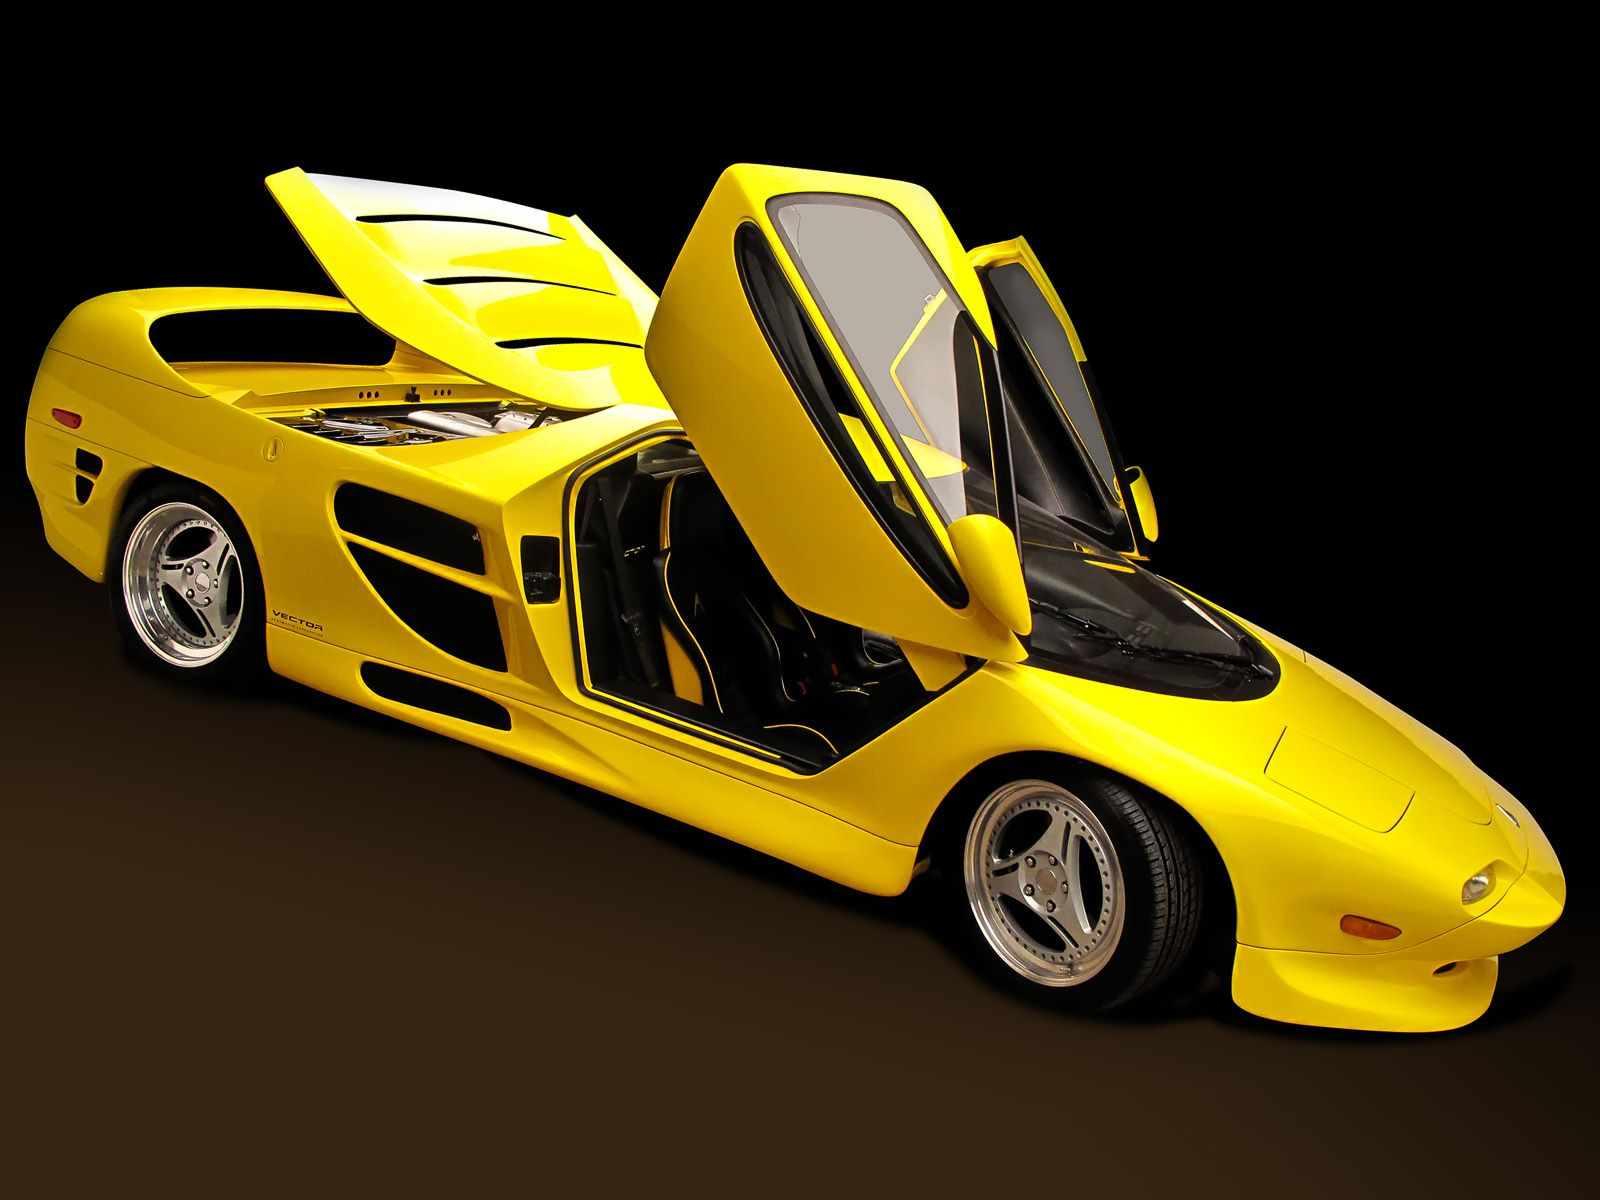 1600x1200 1995 Vector M12 | Madd Muscle | Pinterest | Cars, Dream cars and ...